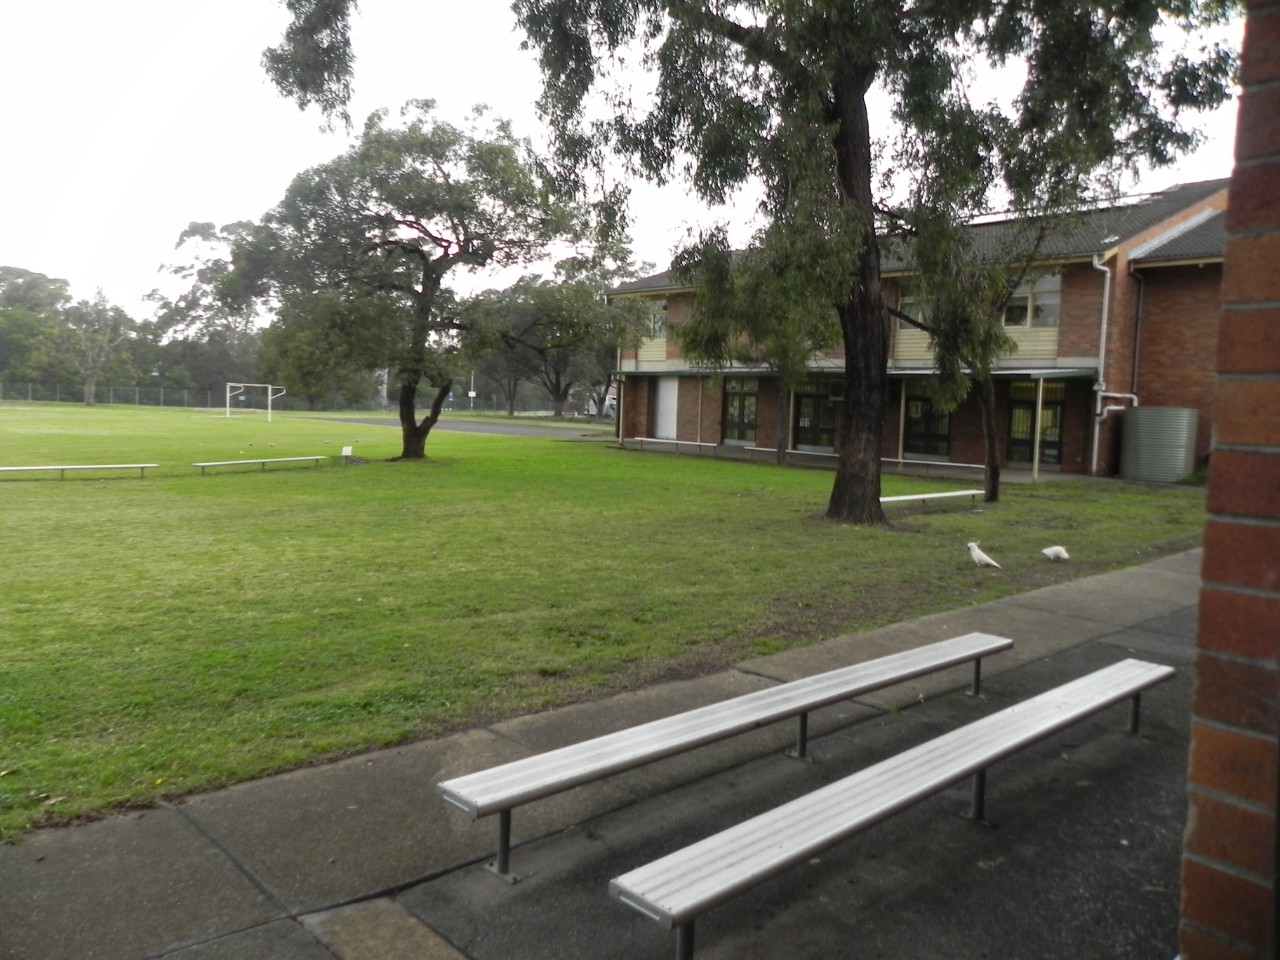 Outside view of the school field.